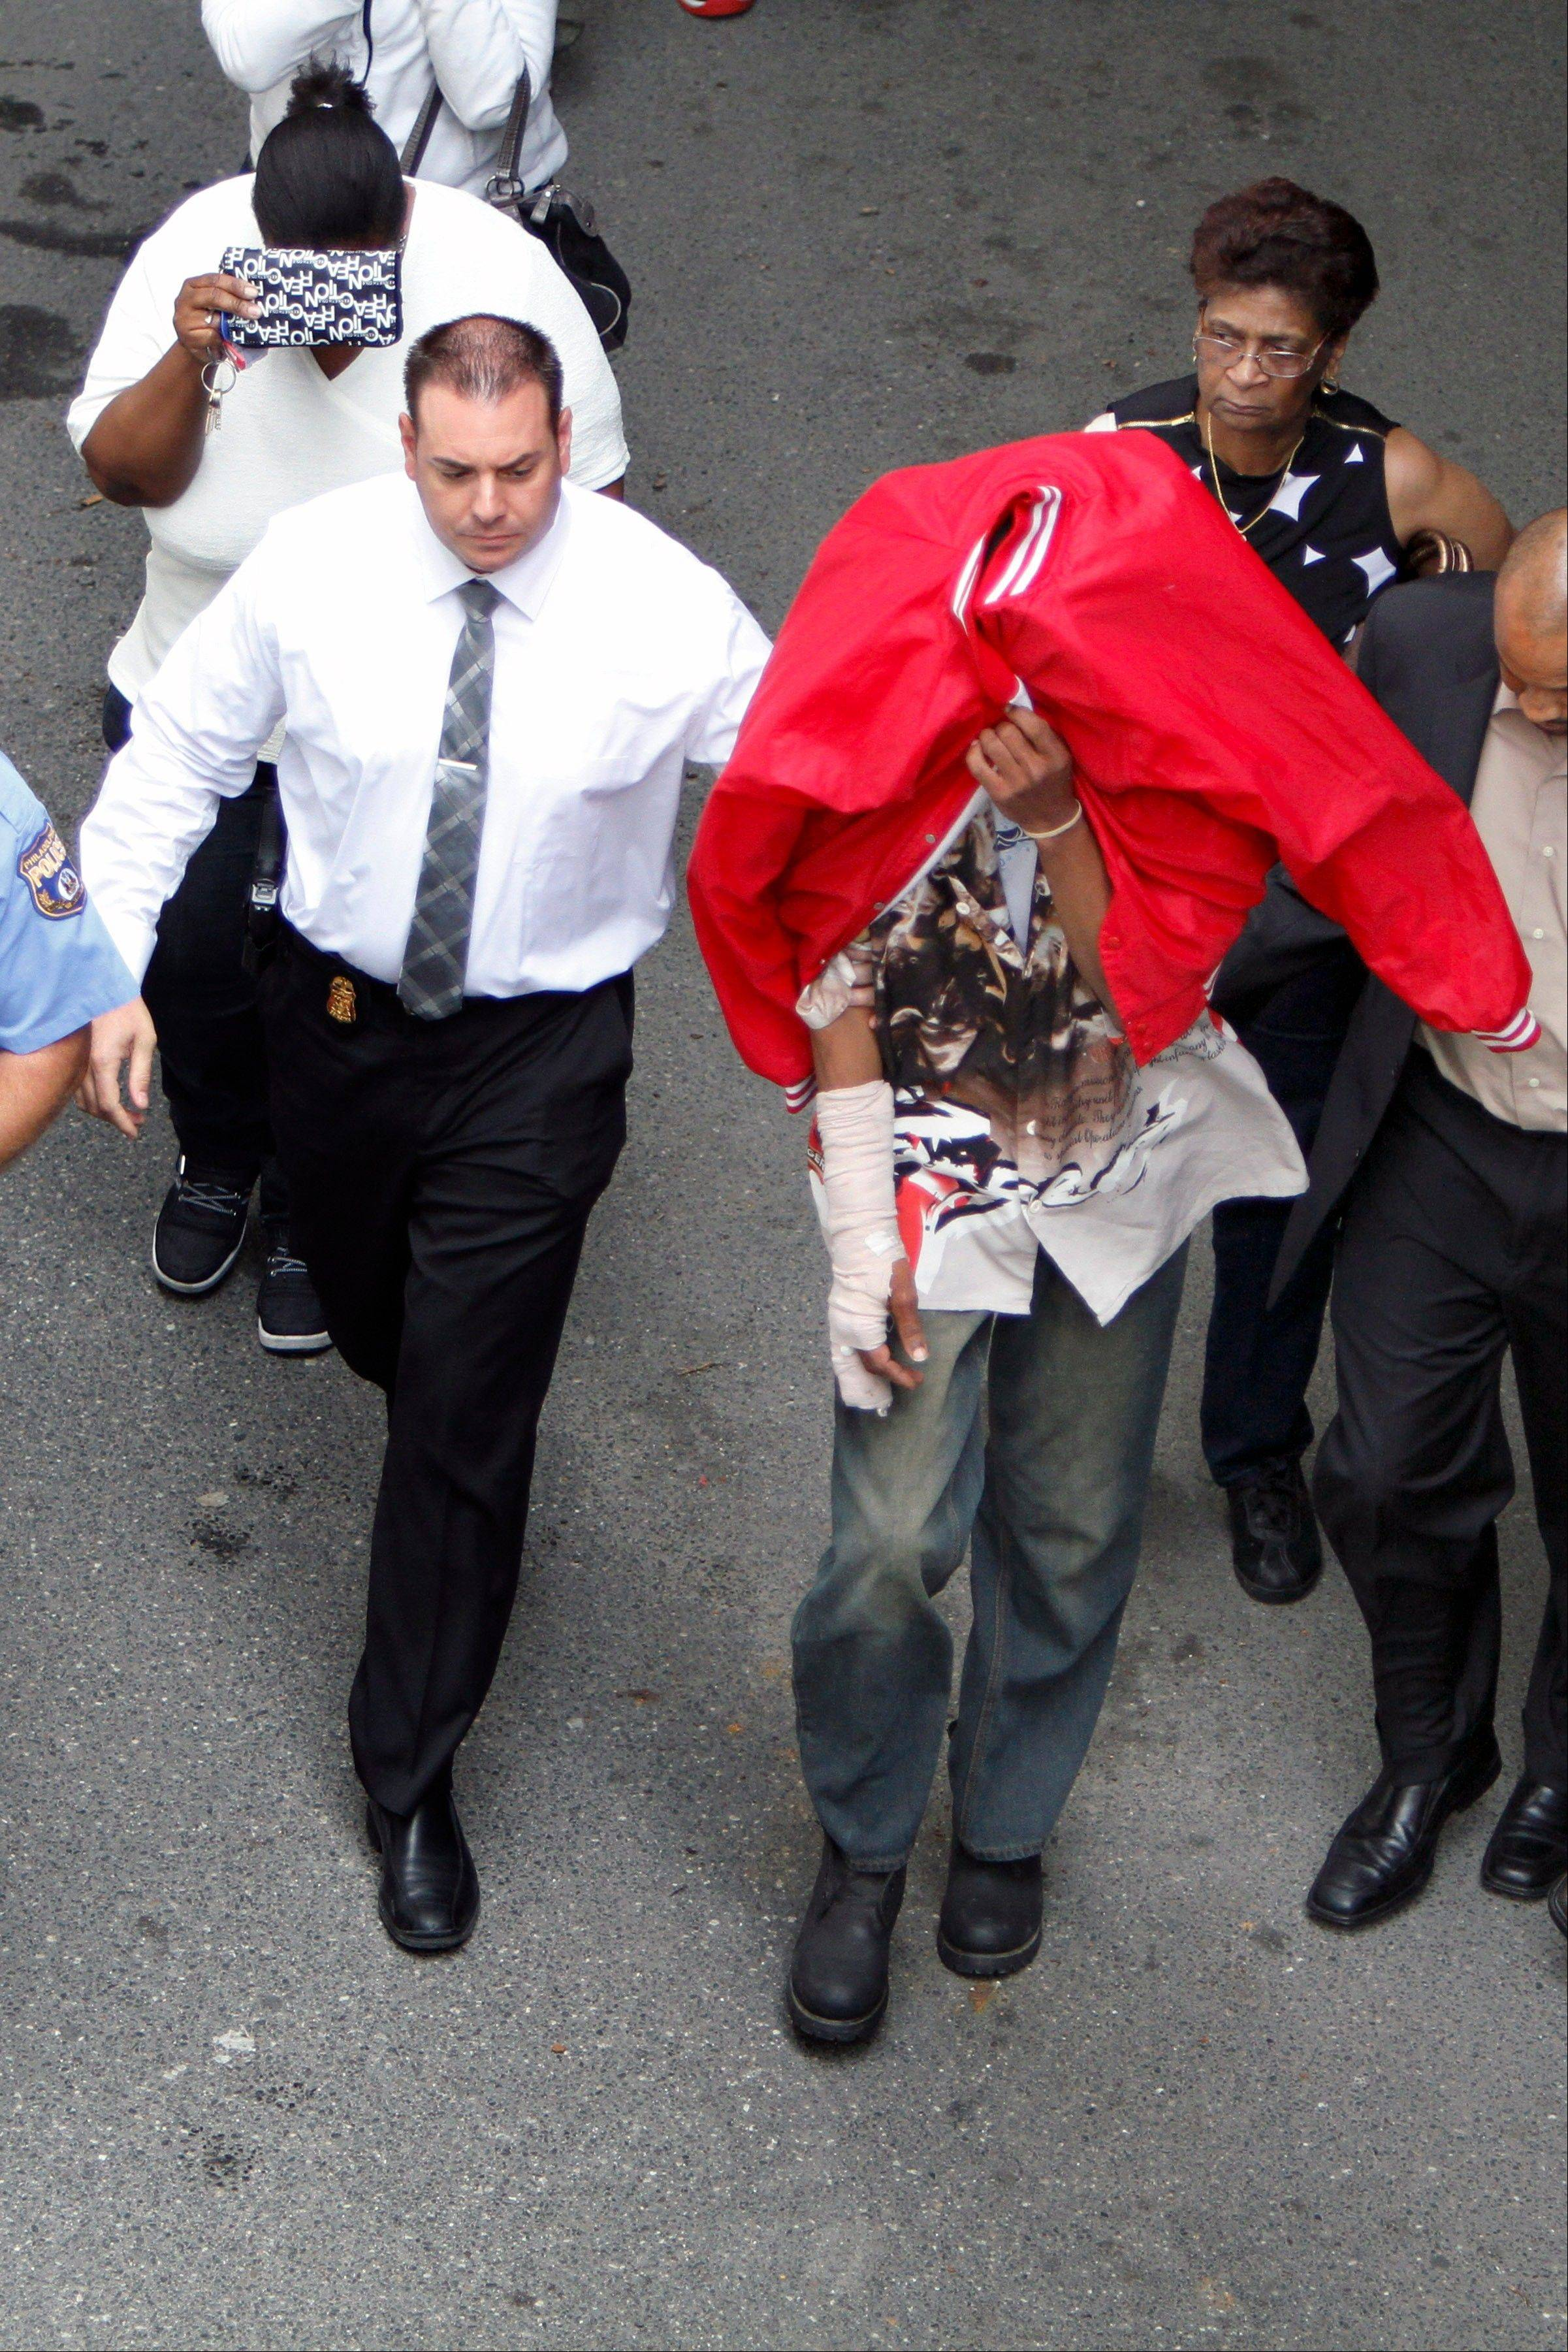 Sean Benschop, center, with red jacket over his head, walks with investigators as he arrives at the Philadelphia Police Department�s Central Detectives Division Saturday in Center City Philadelphia. Benschop, the heavy equipment operator accused of being high on marijuana when a downtown building collapsed onto a thrift store, killing six people, turned himself in on Saturday to face charges in the deaths, police said.